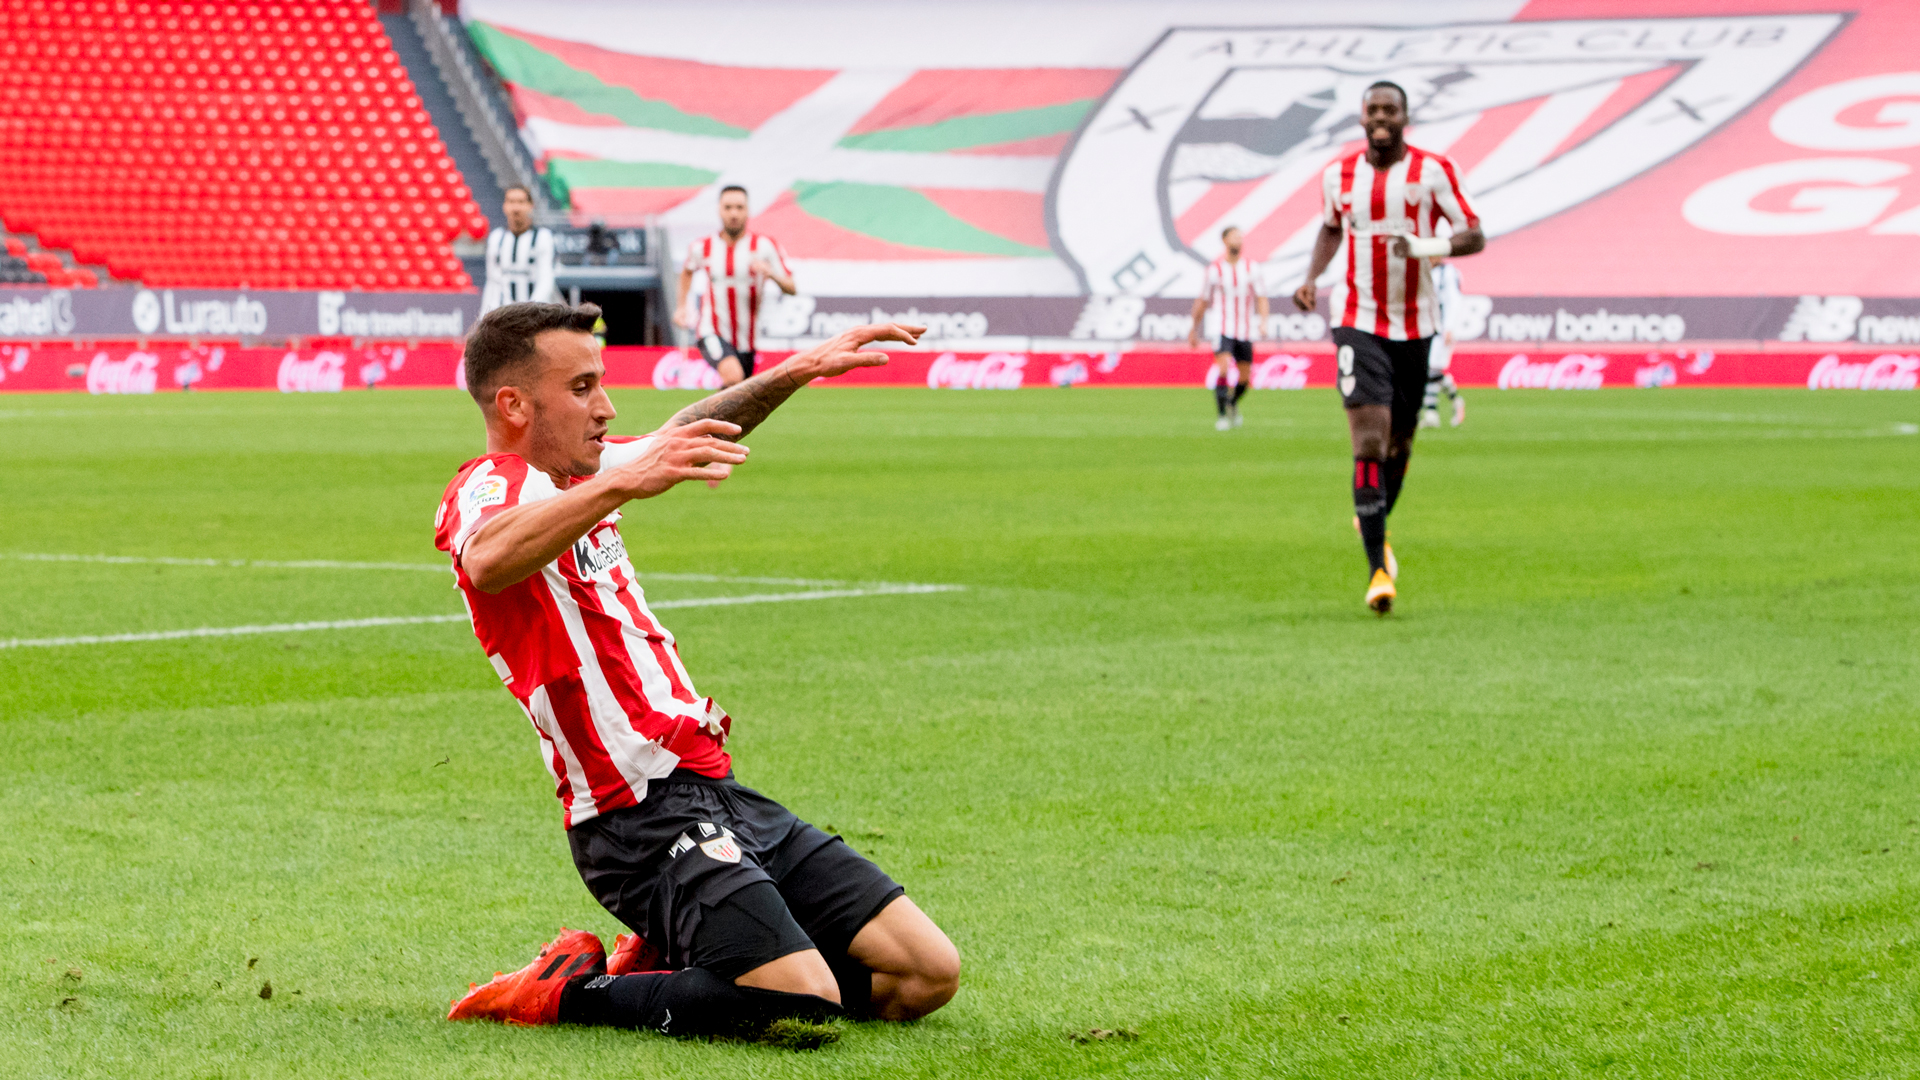 One year since Berenguer's first Athletic goal